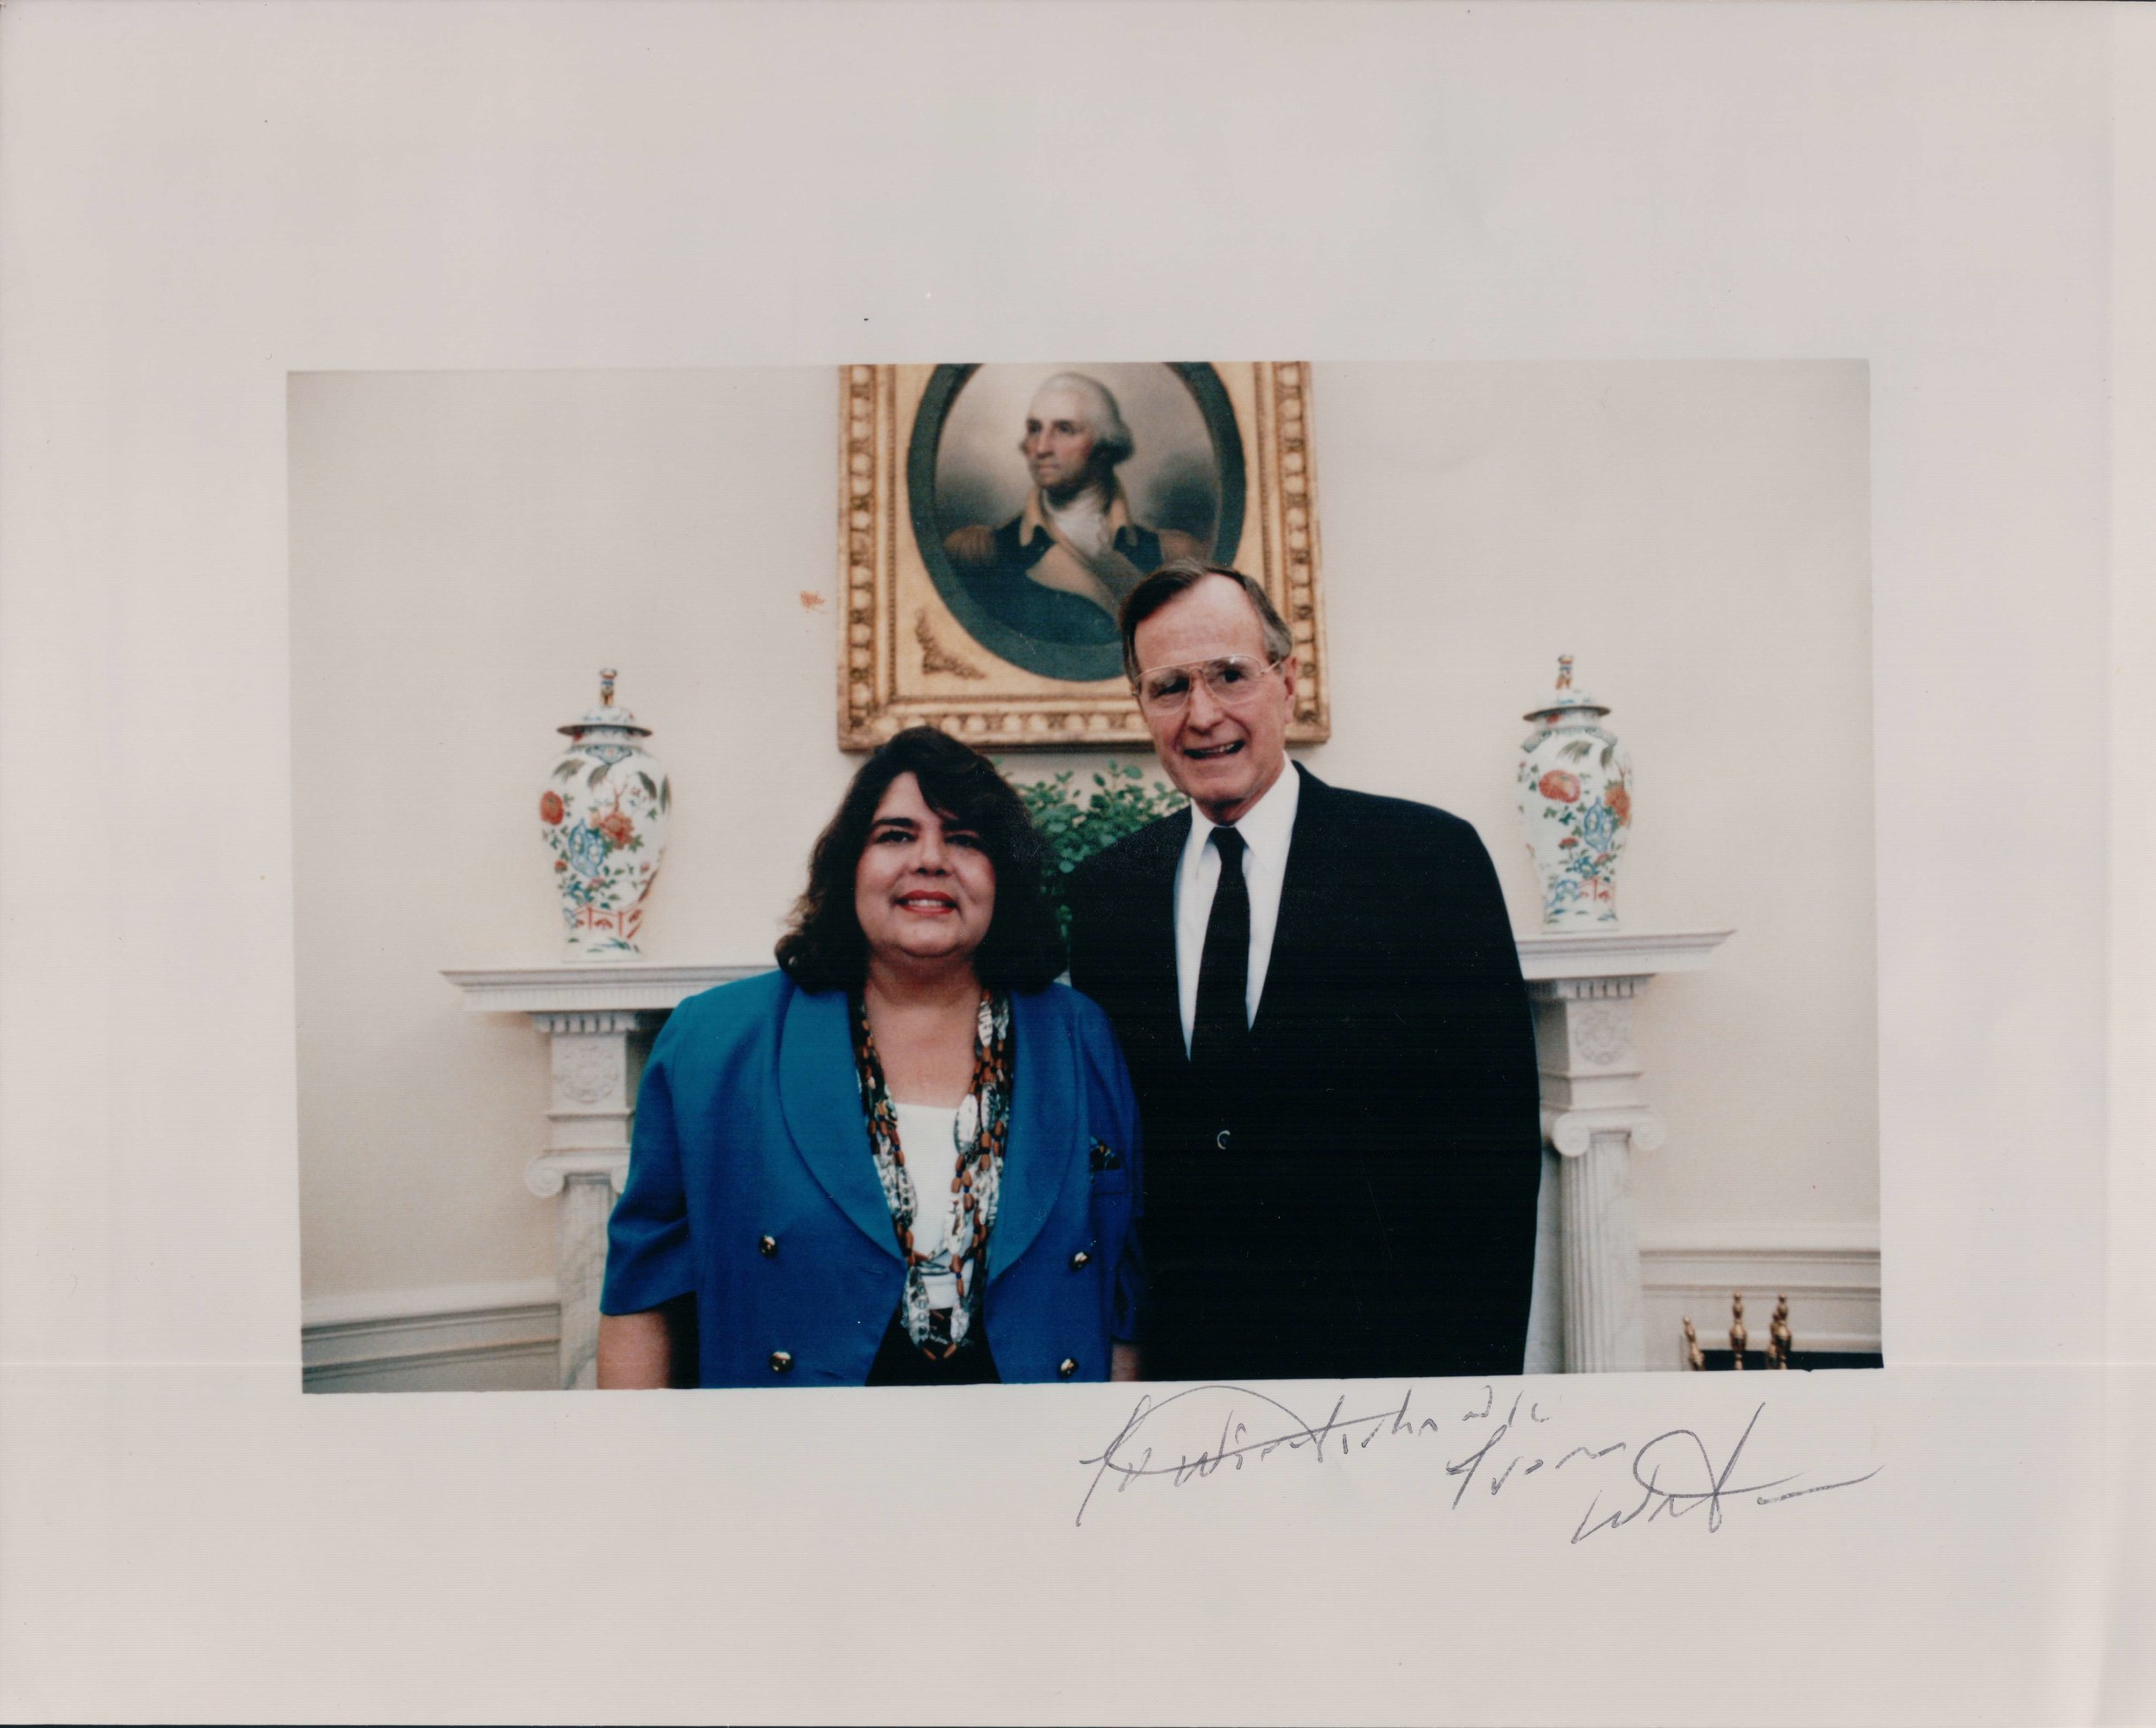 Wilma Mankiller and U.S. President George H.W. Bush pose at the White House